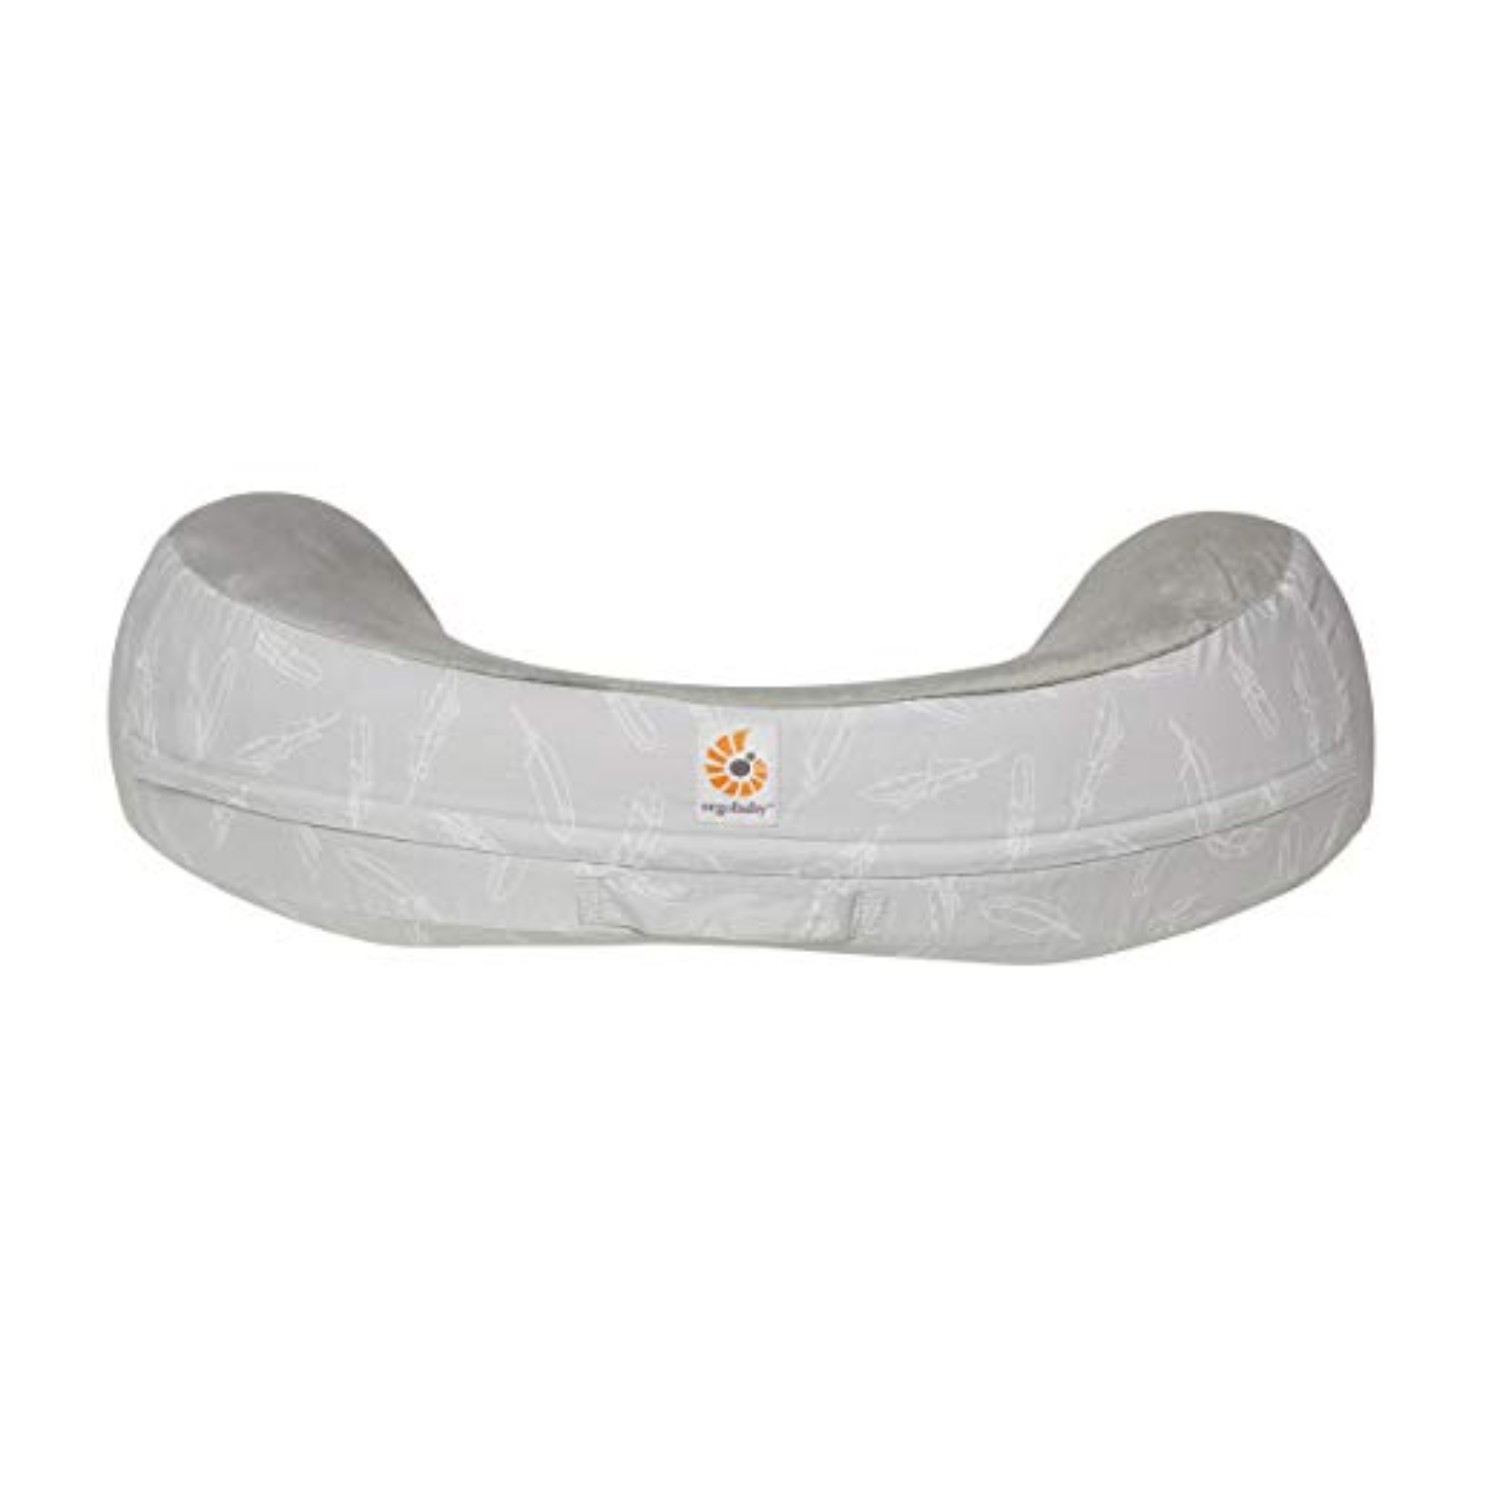 Ergobaby Natural Curve Nursing Pillow Falling Feathers